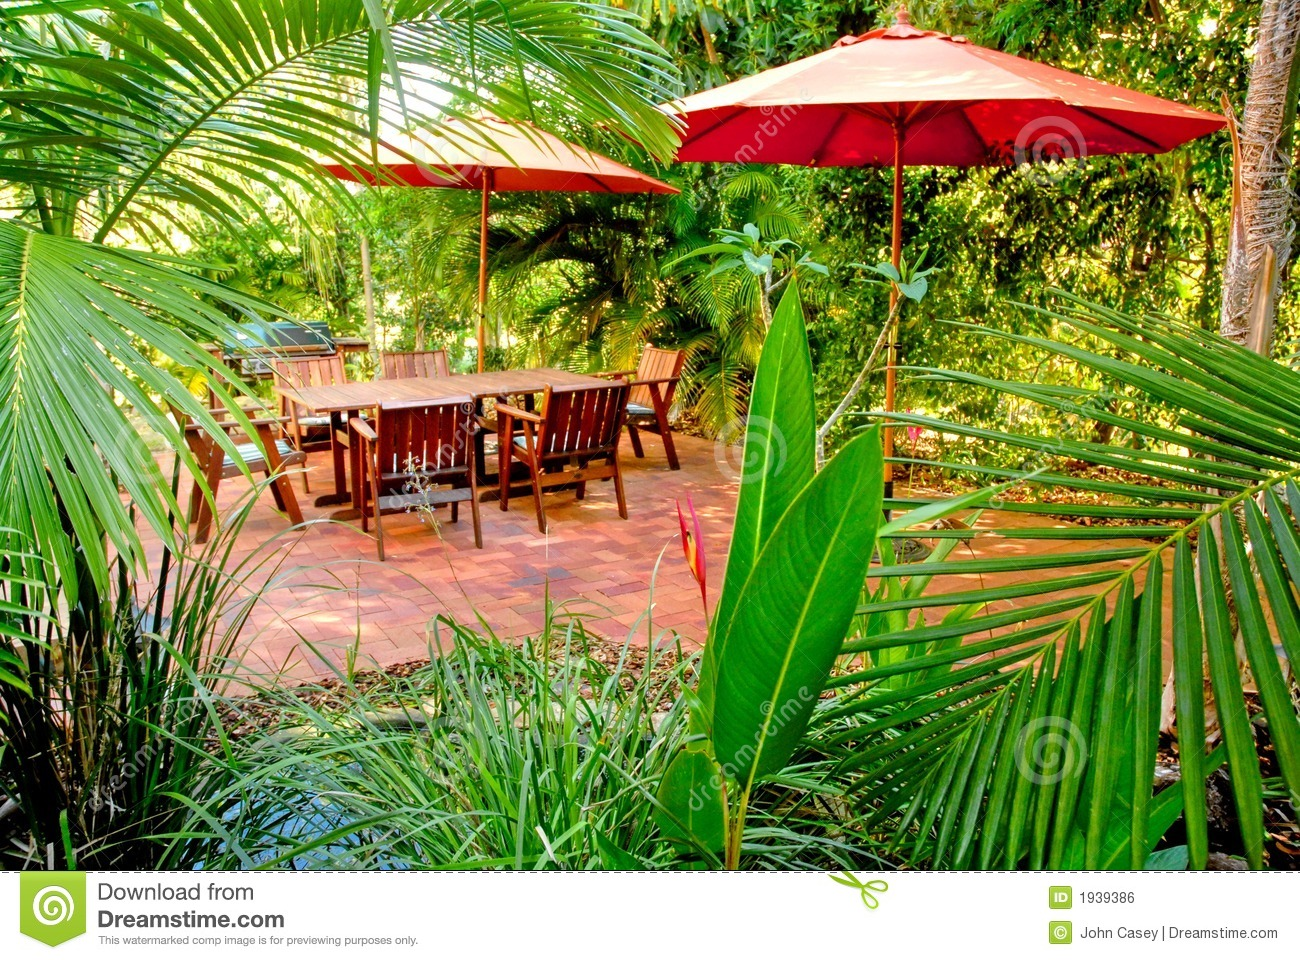 Backyard Jungle Tropical Landscapes : backyard tropical garden provides the ideal place for outdoor living